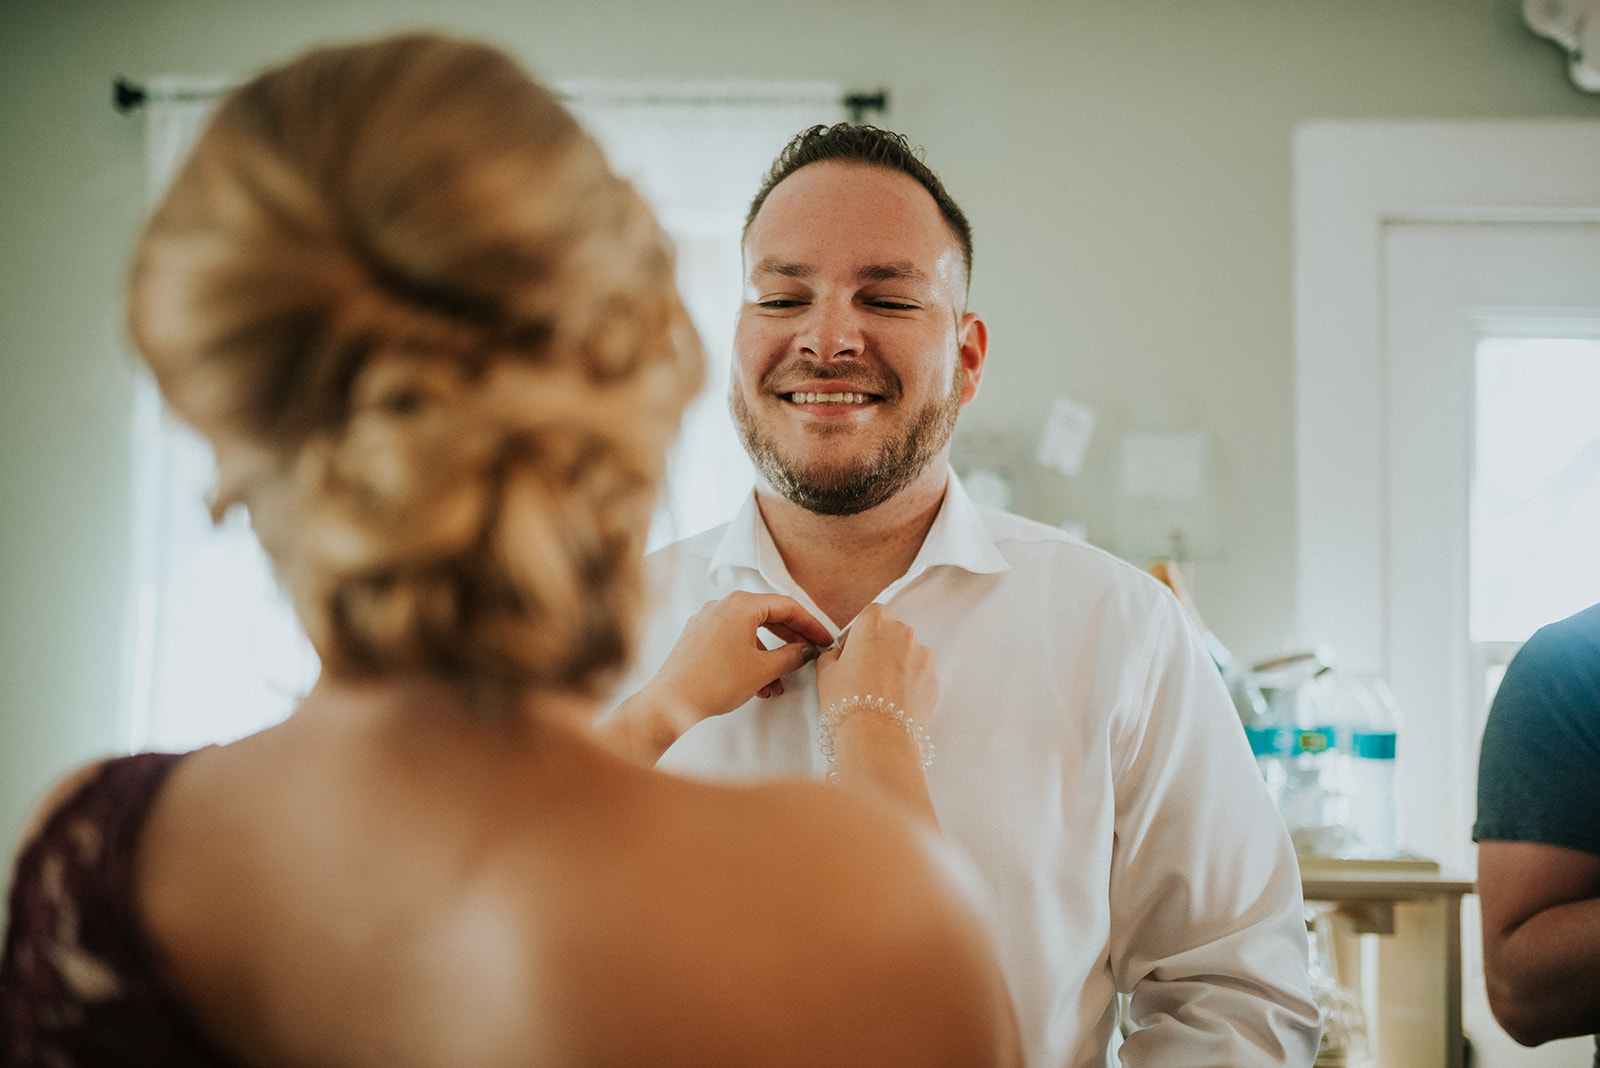 overthevineswisconsinwedding_0396.jpg